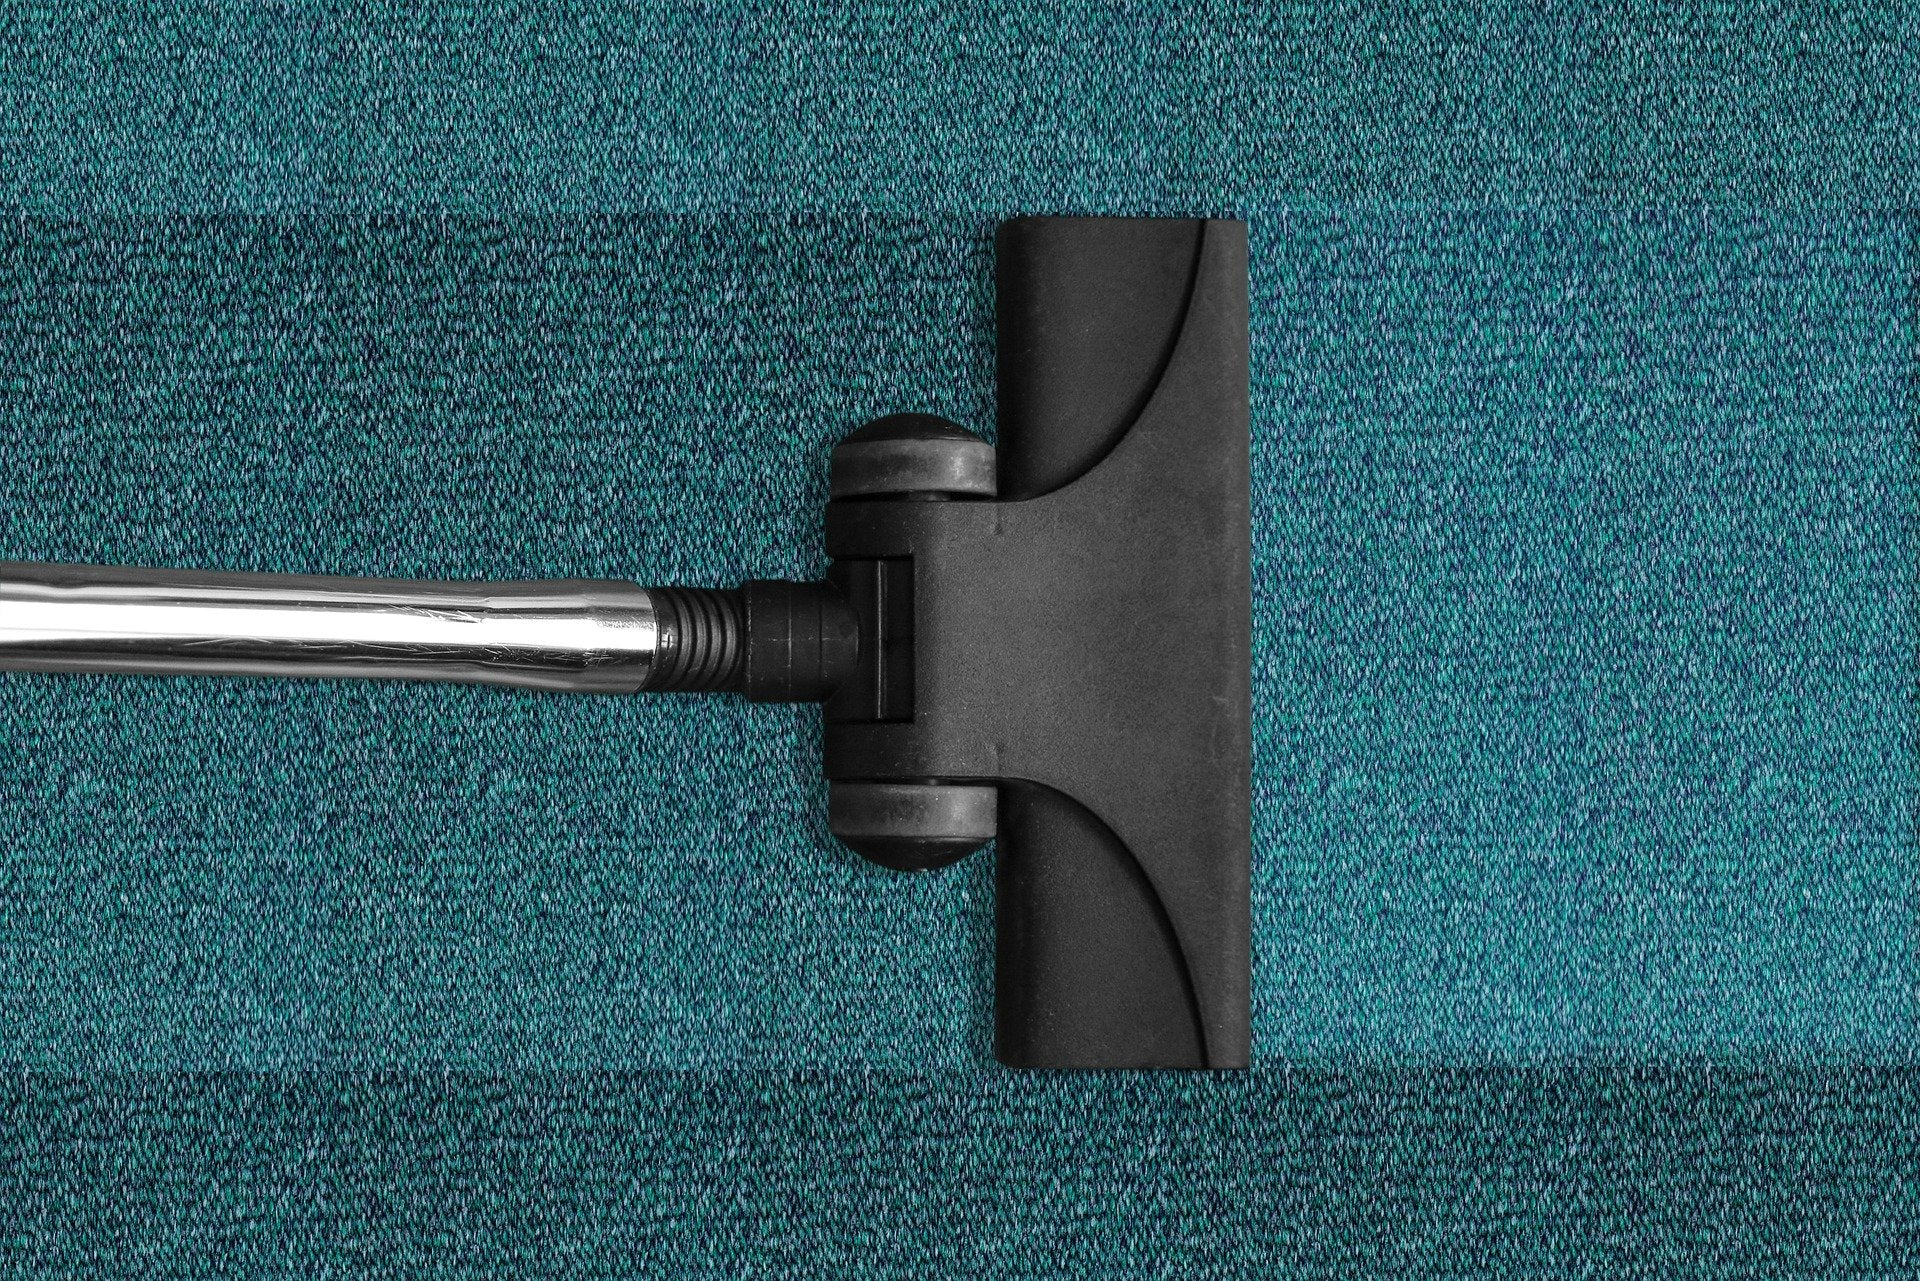 How to Remove Red Wine Stains on a Carpet